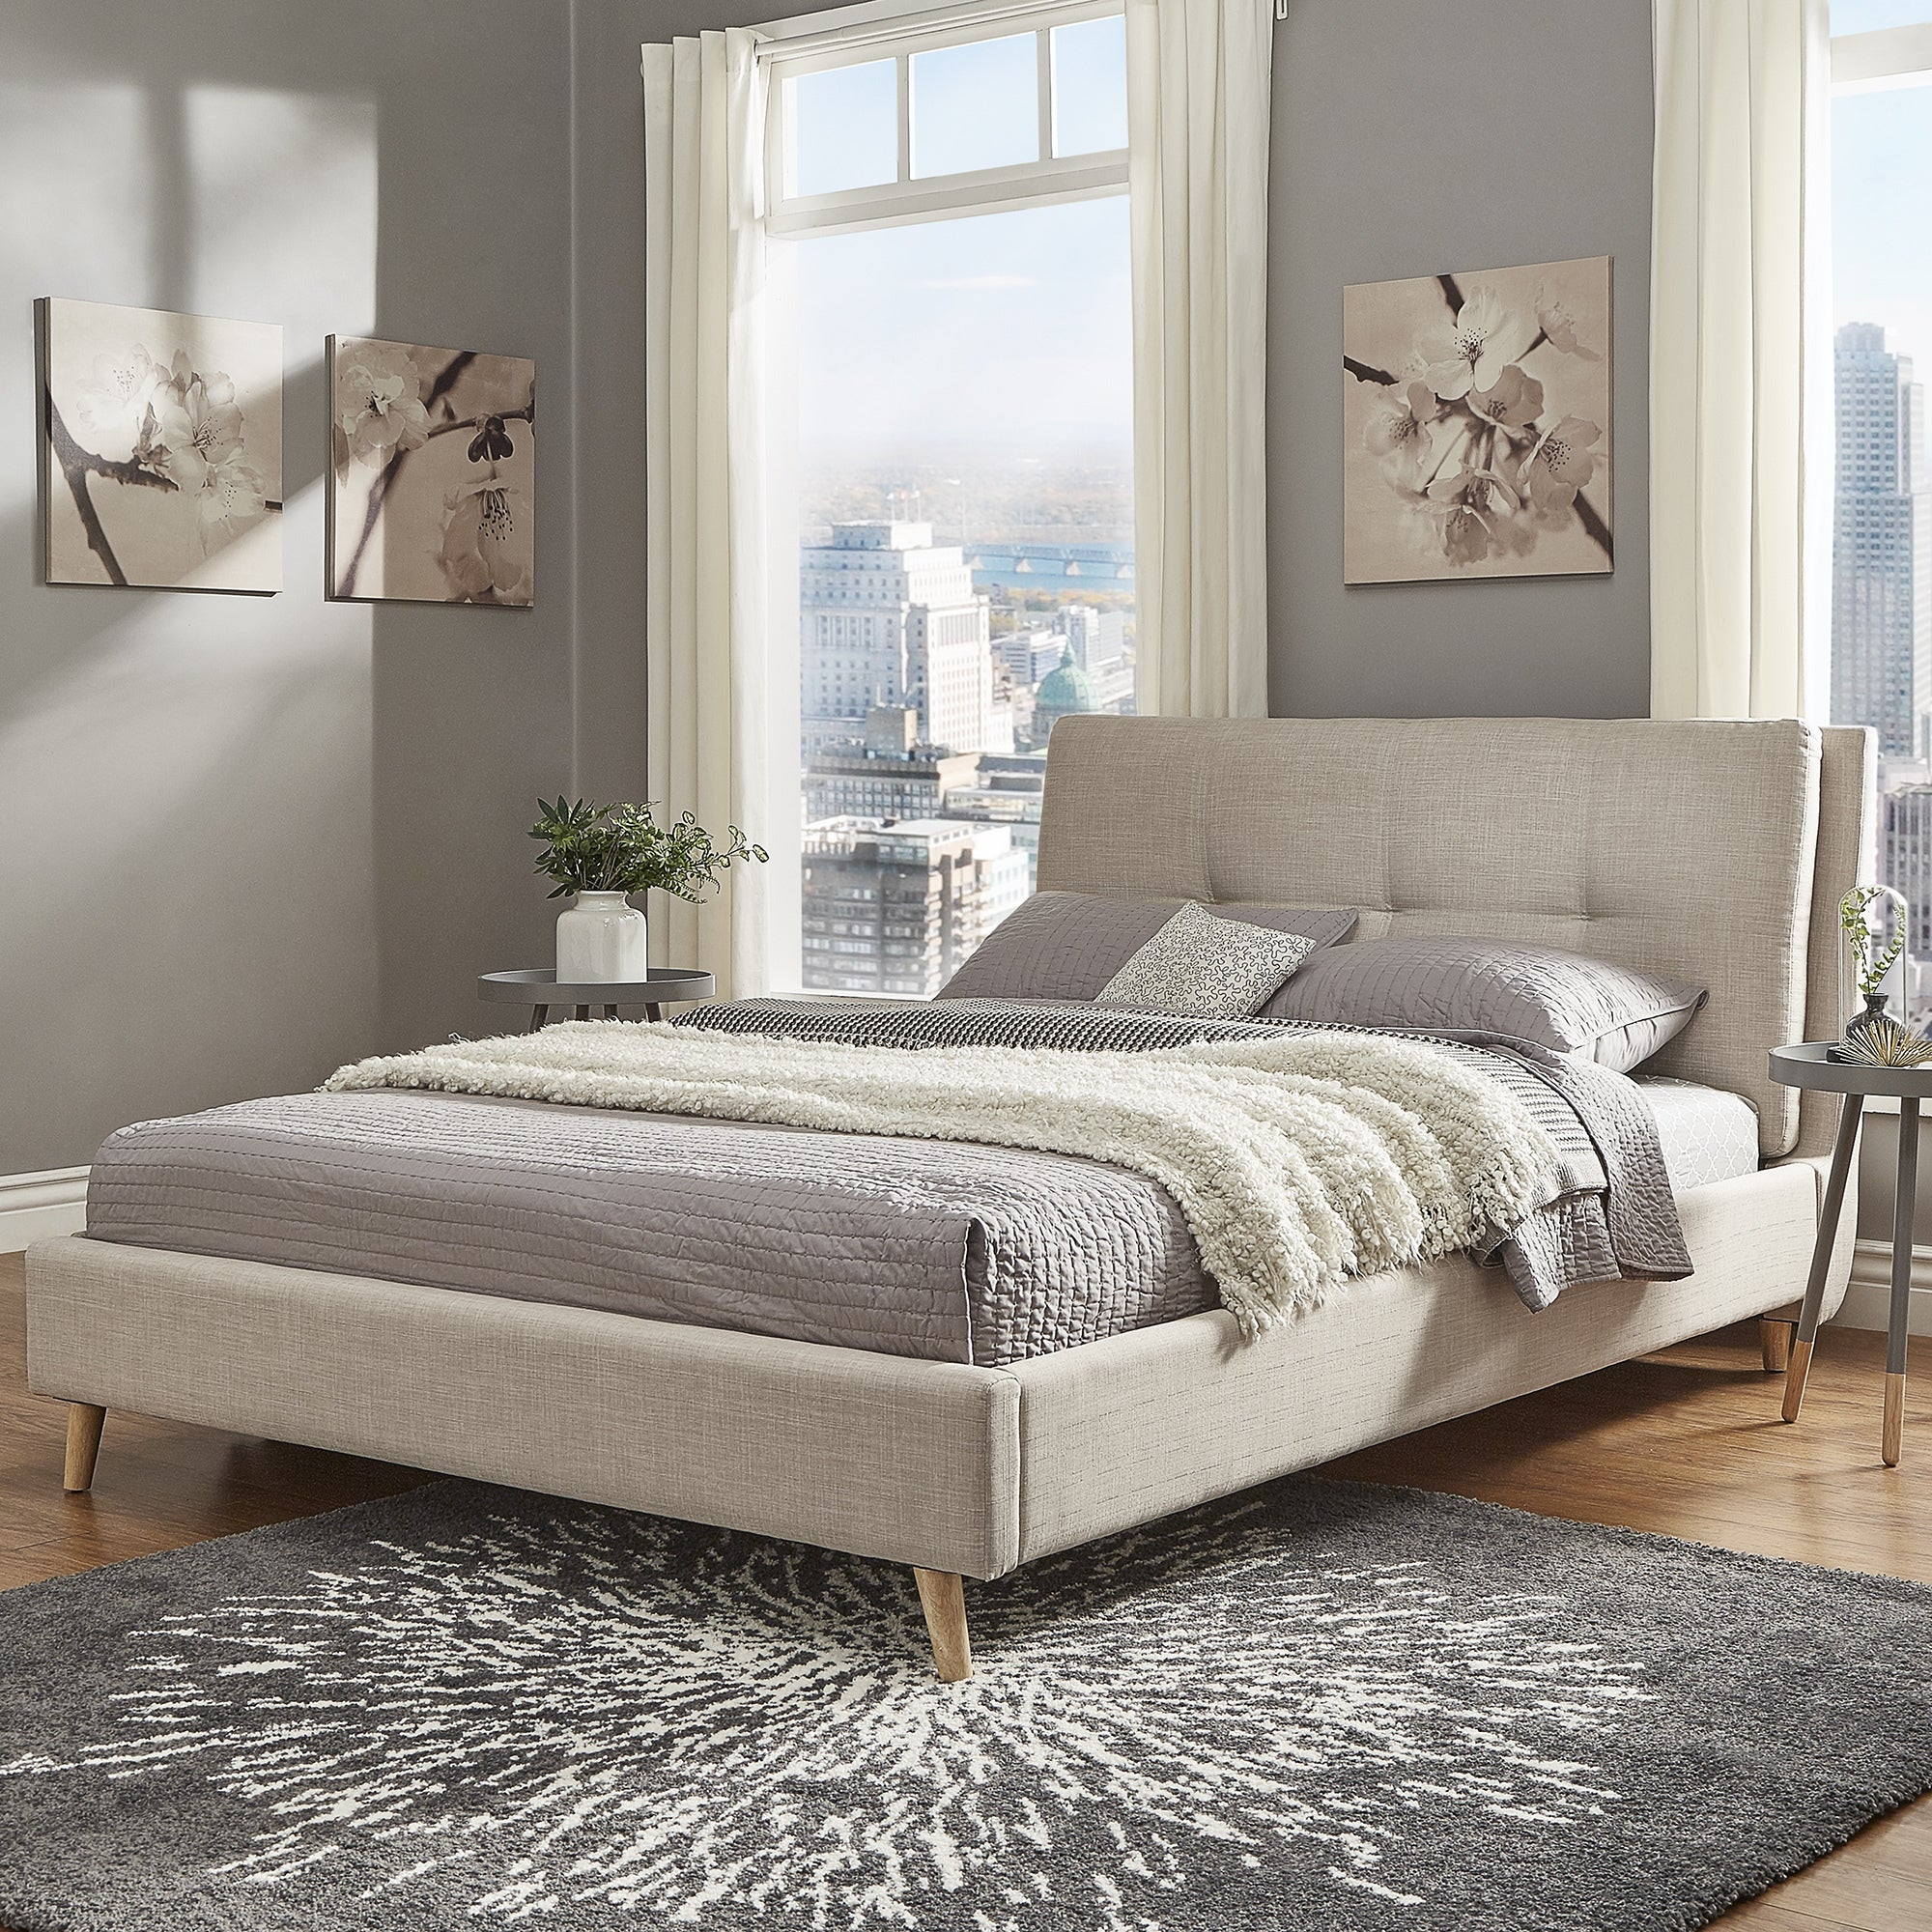 double frame for headboard side studio size disley fabric oak king bed solid grey